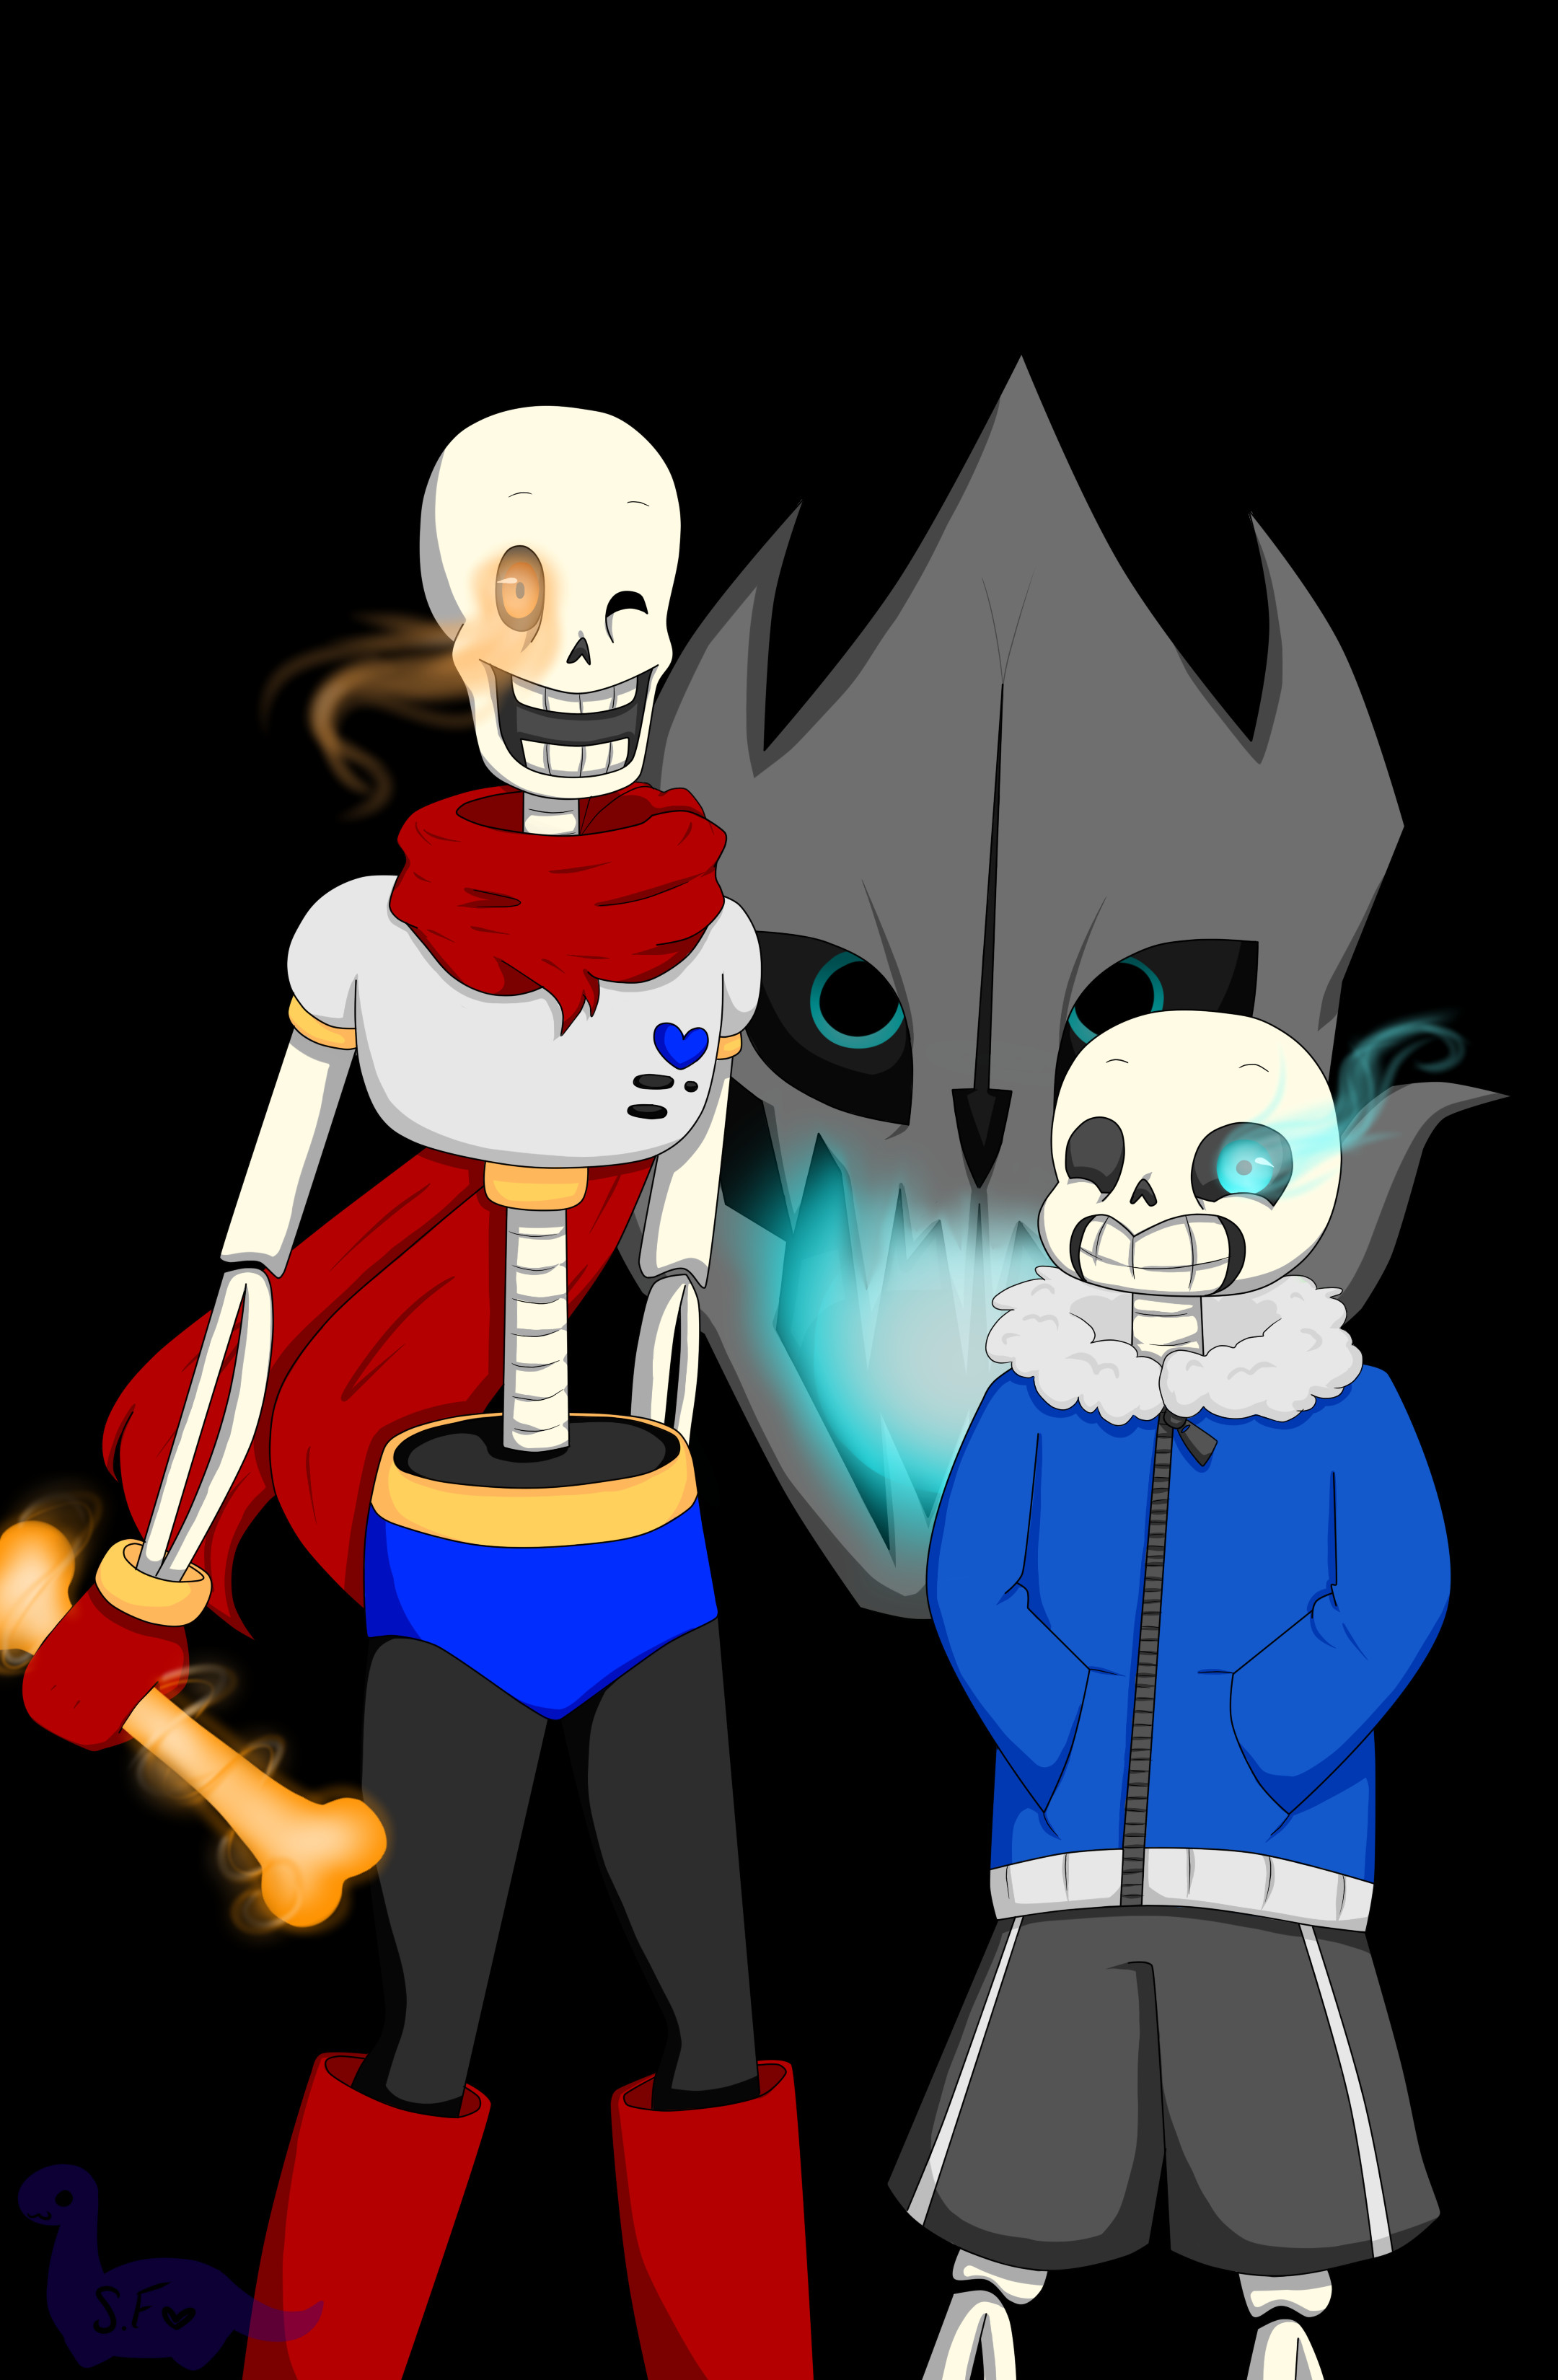 2160x3300 undertale papyrus wallpaper images (2) - HD Wallpapers Buzz